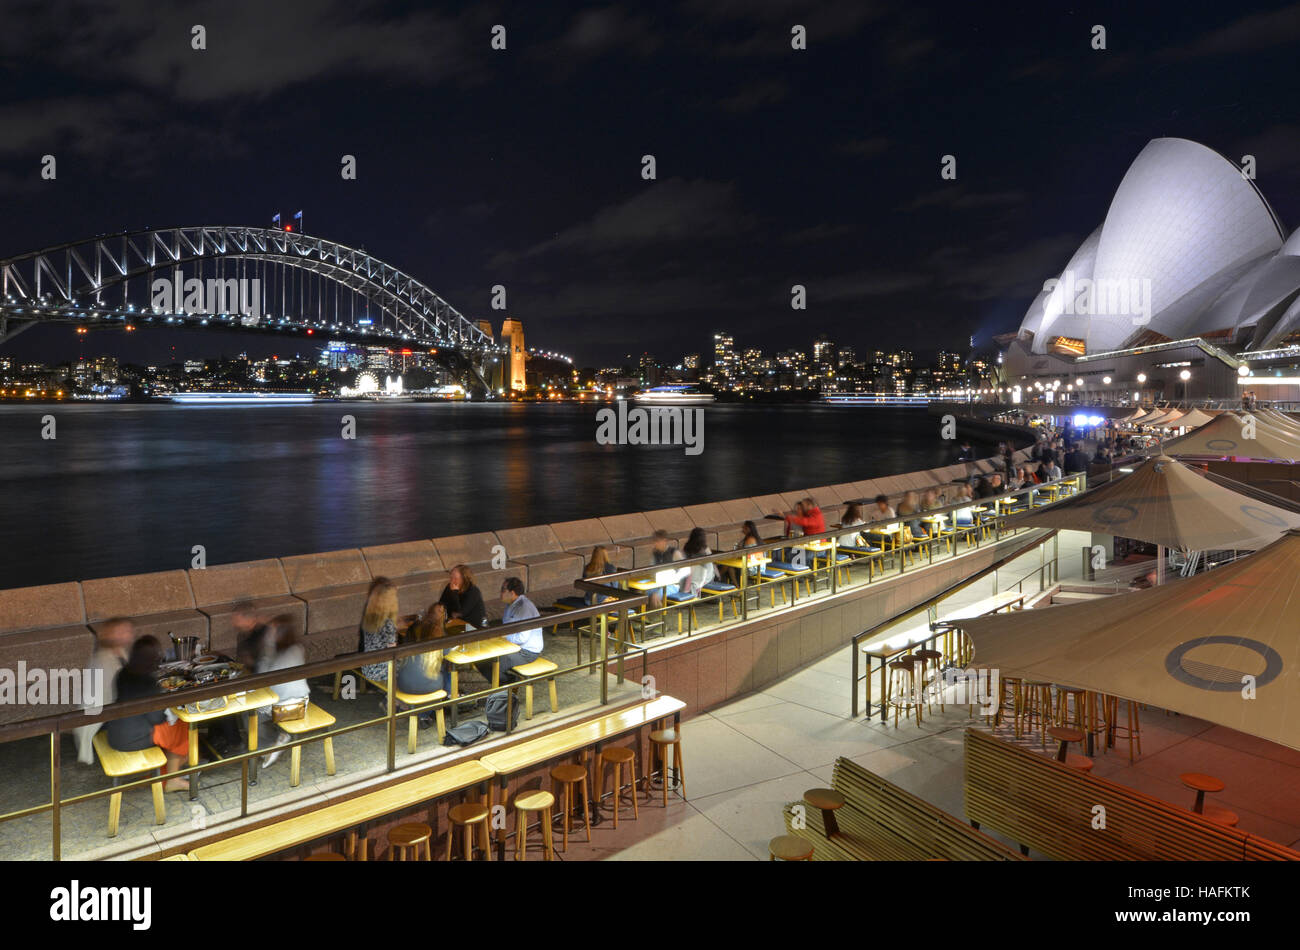 Sydney Harbour Bridge and the Opera House skyline at night as view from Sydney cove in Sydney New South Wales, Australia. - Stock Image